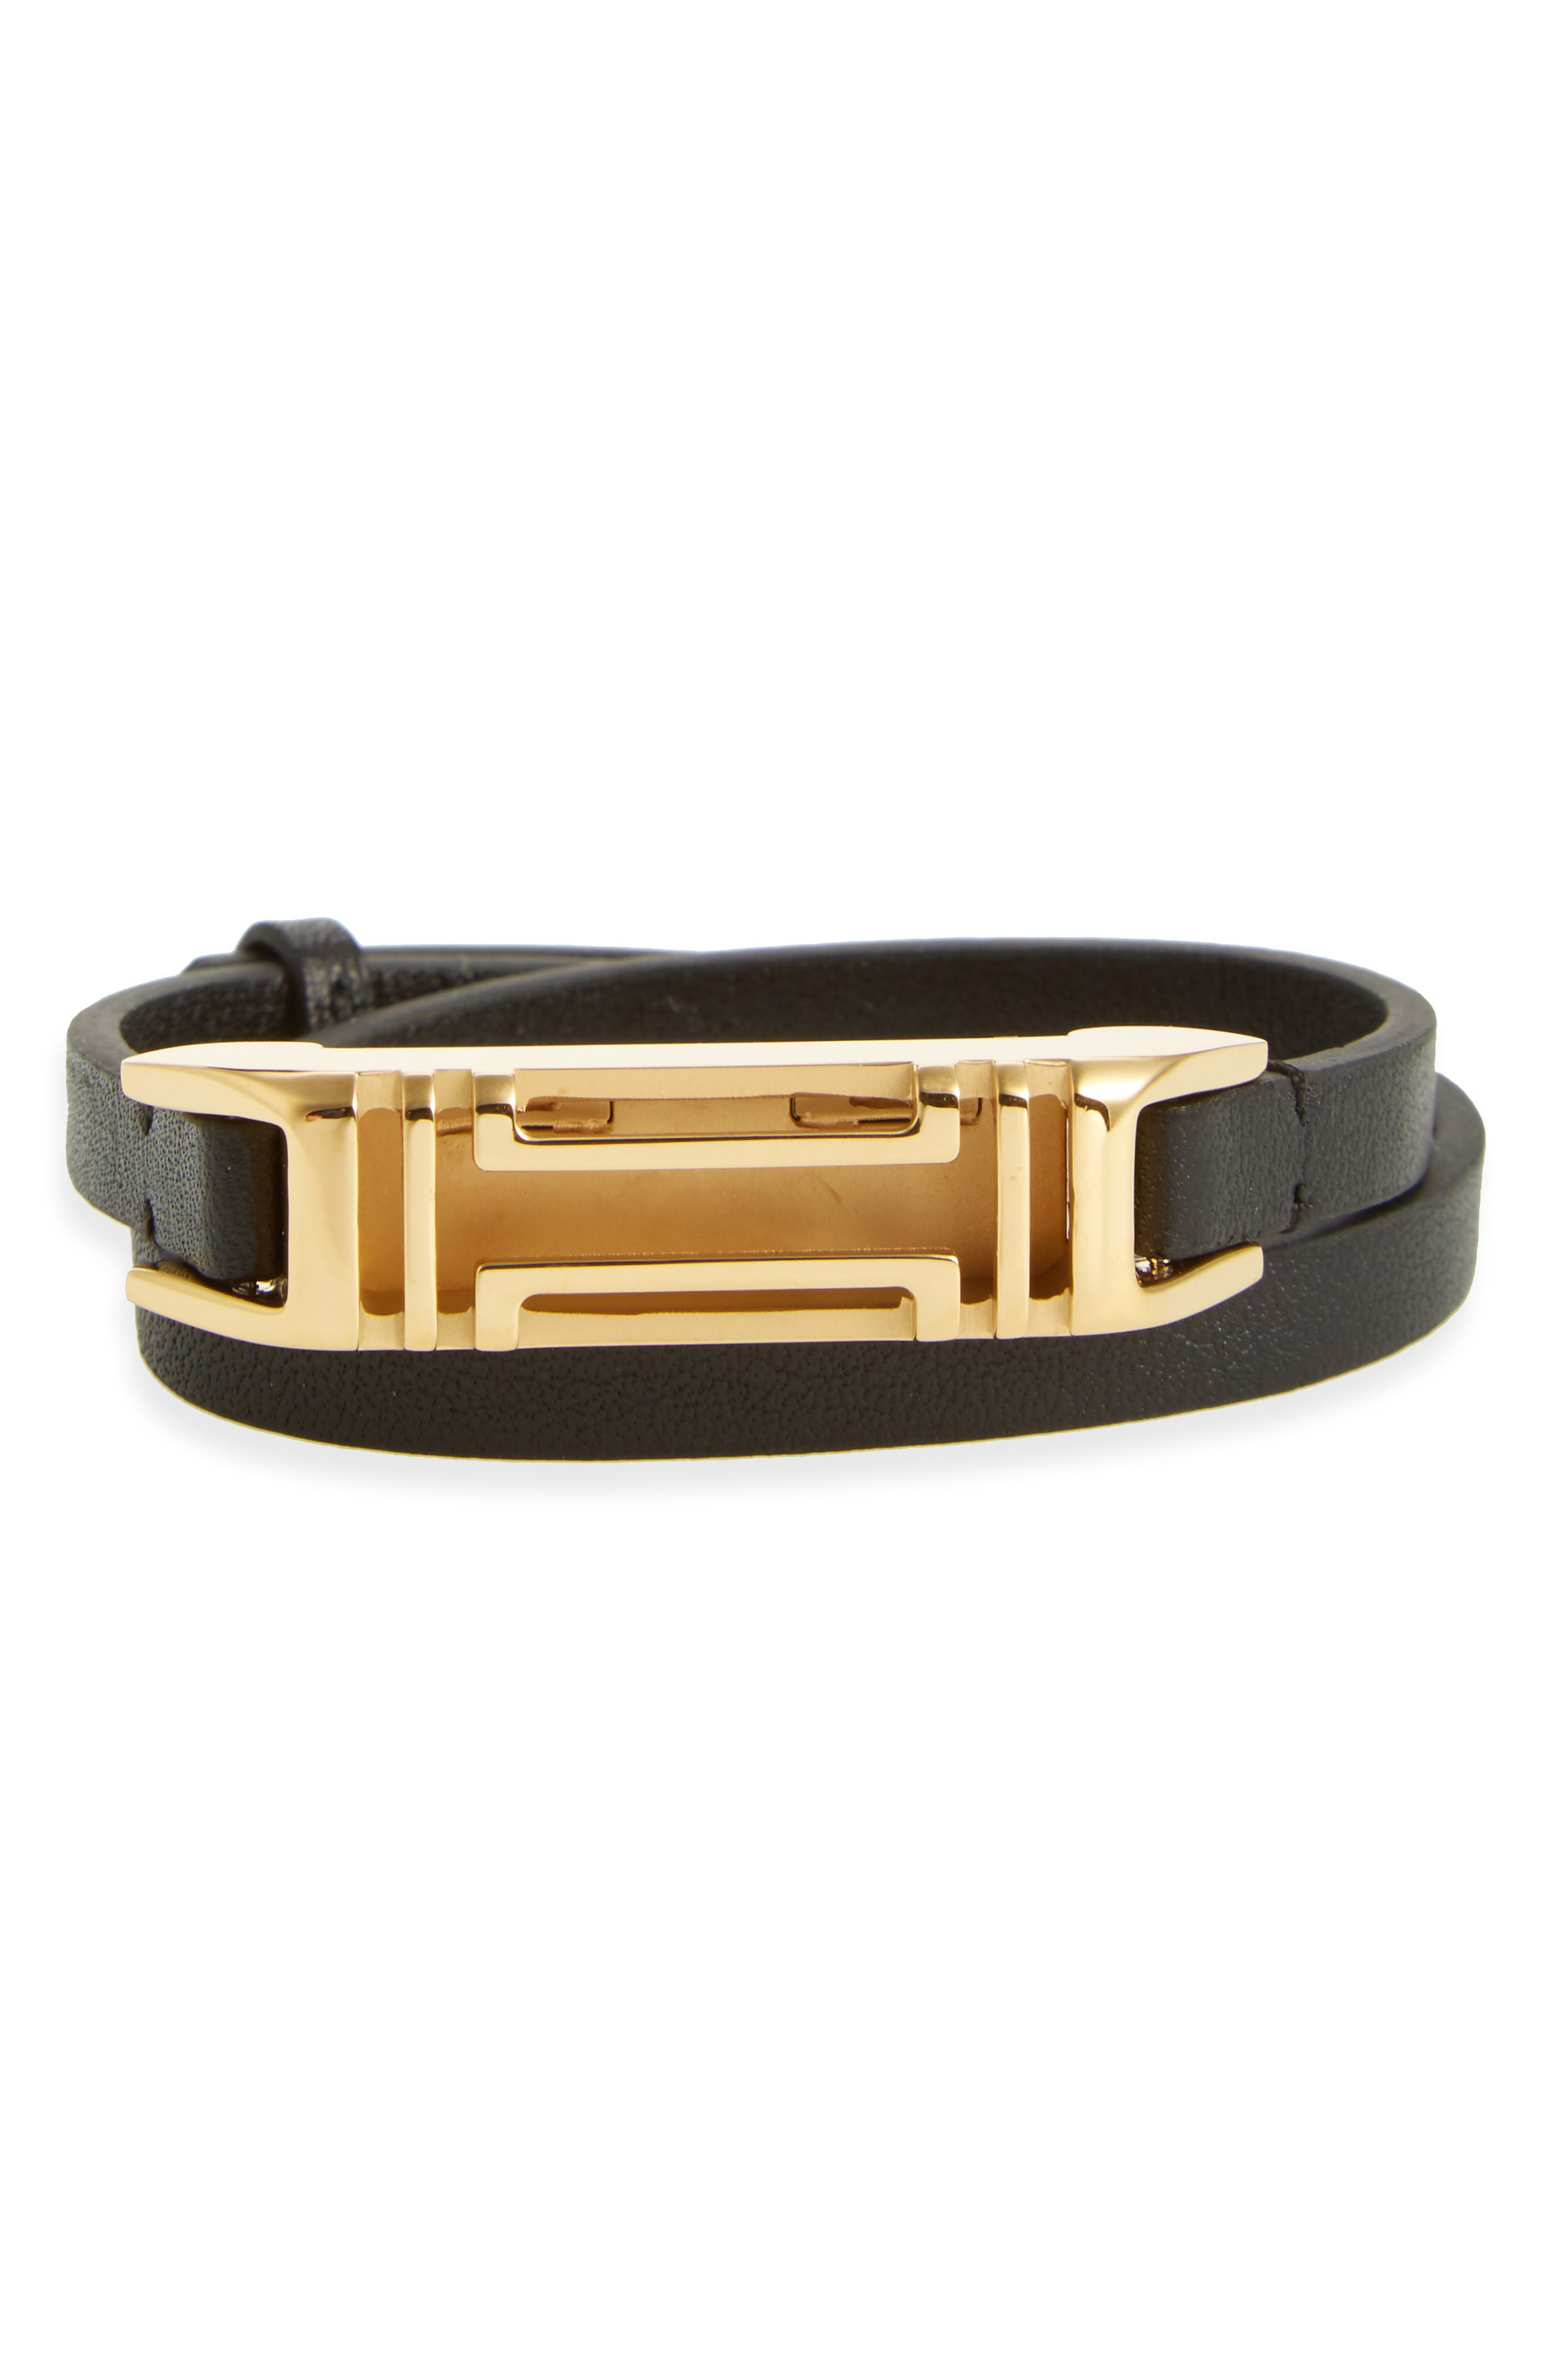 TORY BURCH for Fitbit<sup>®</sup> Leather Wrap Bracelet